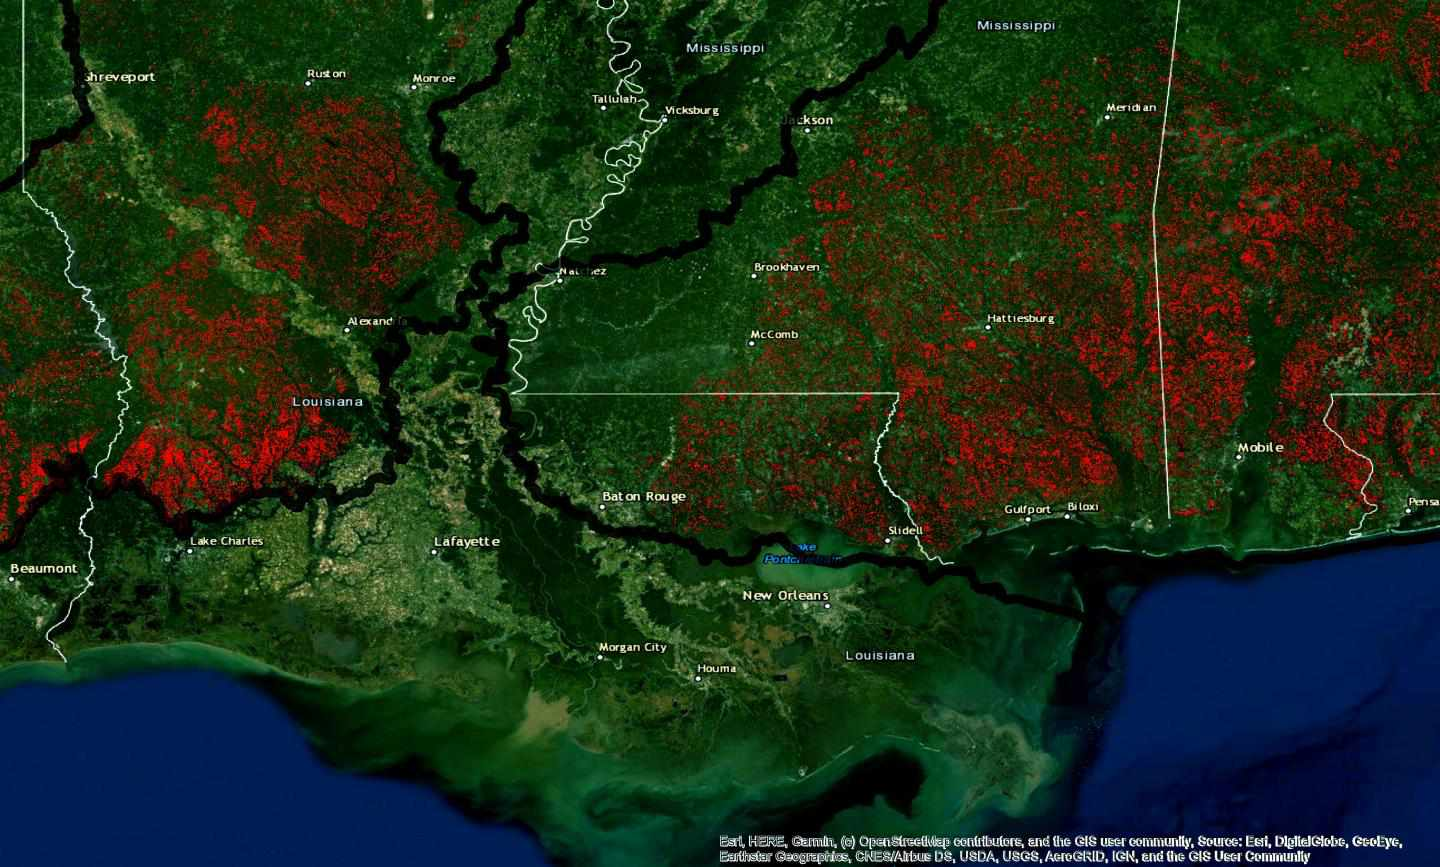 Map showing habitat loss for red-cockaded woodpeecker